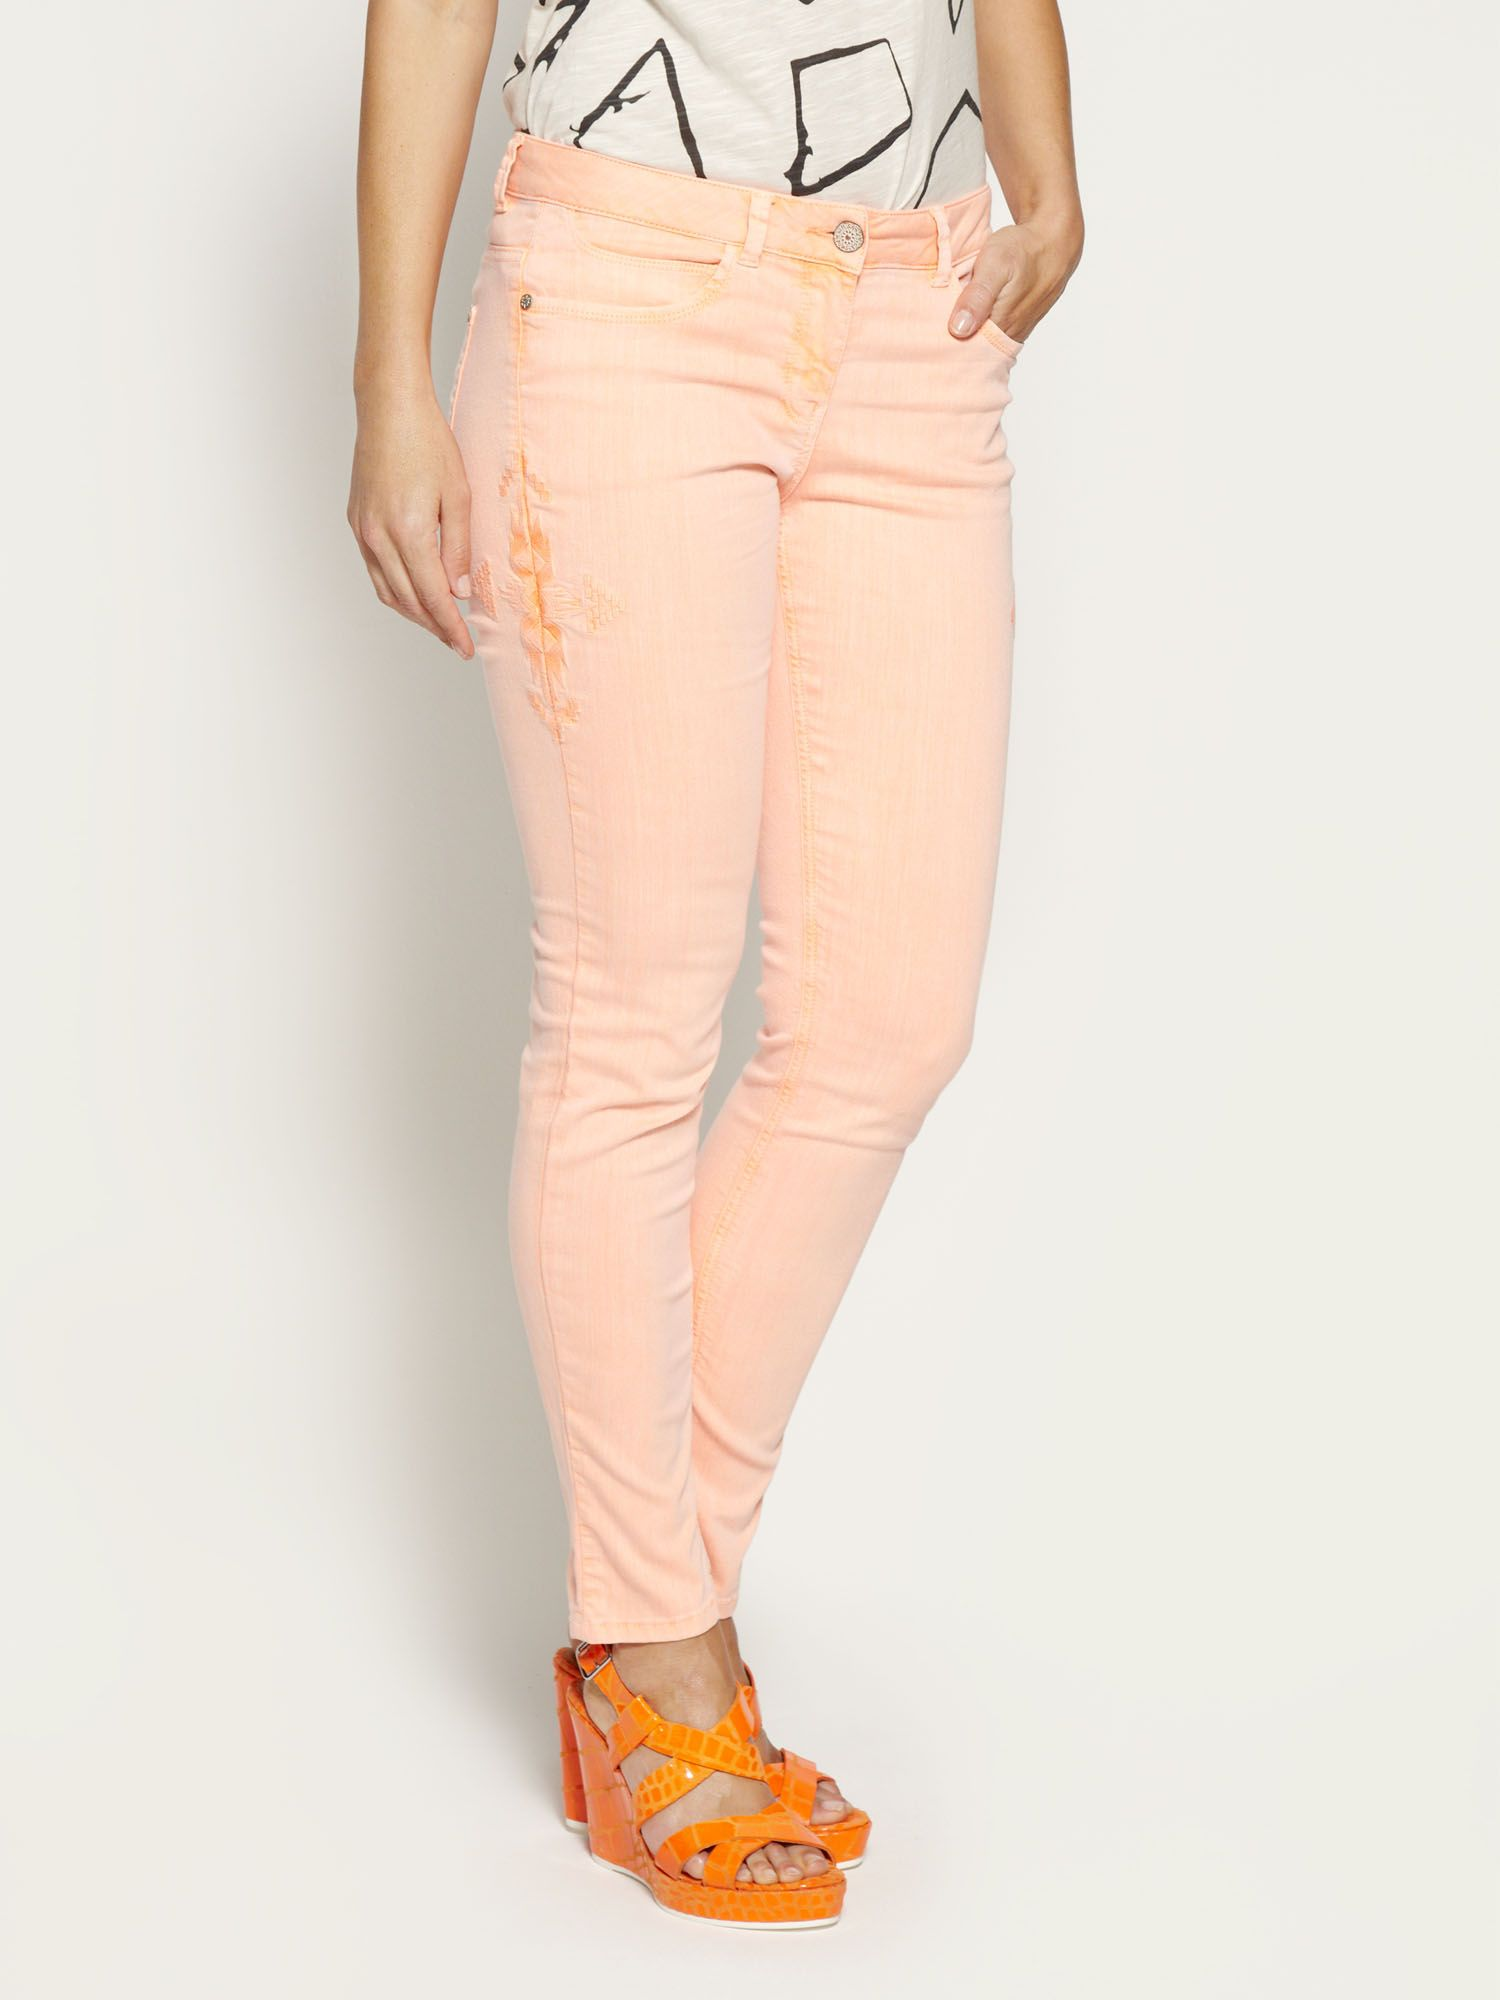 Cotton stretch skinny jeans